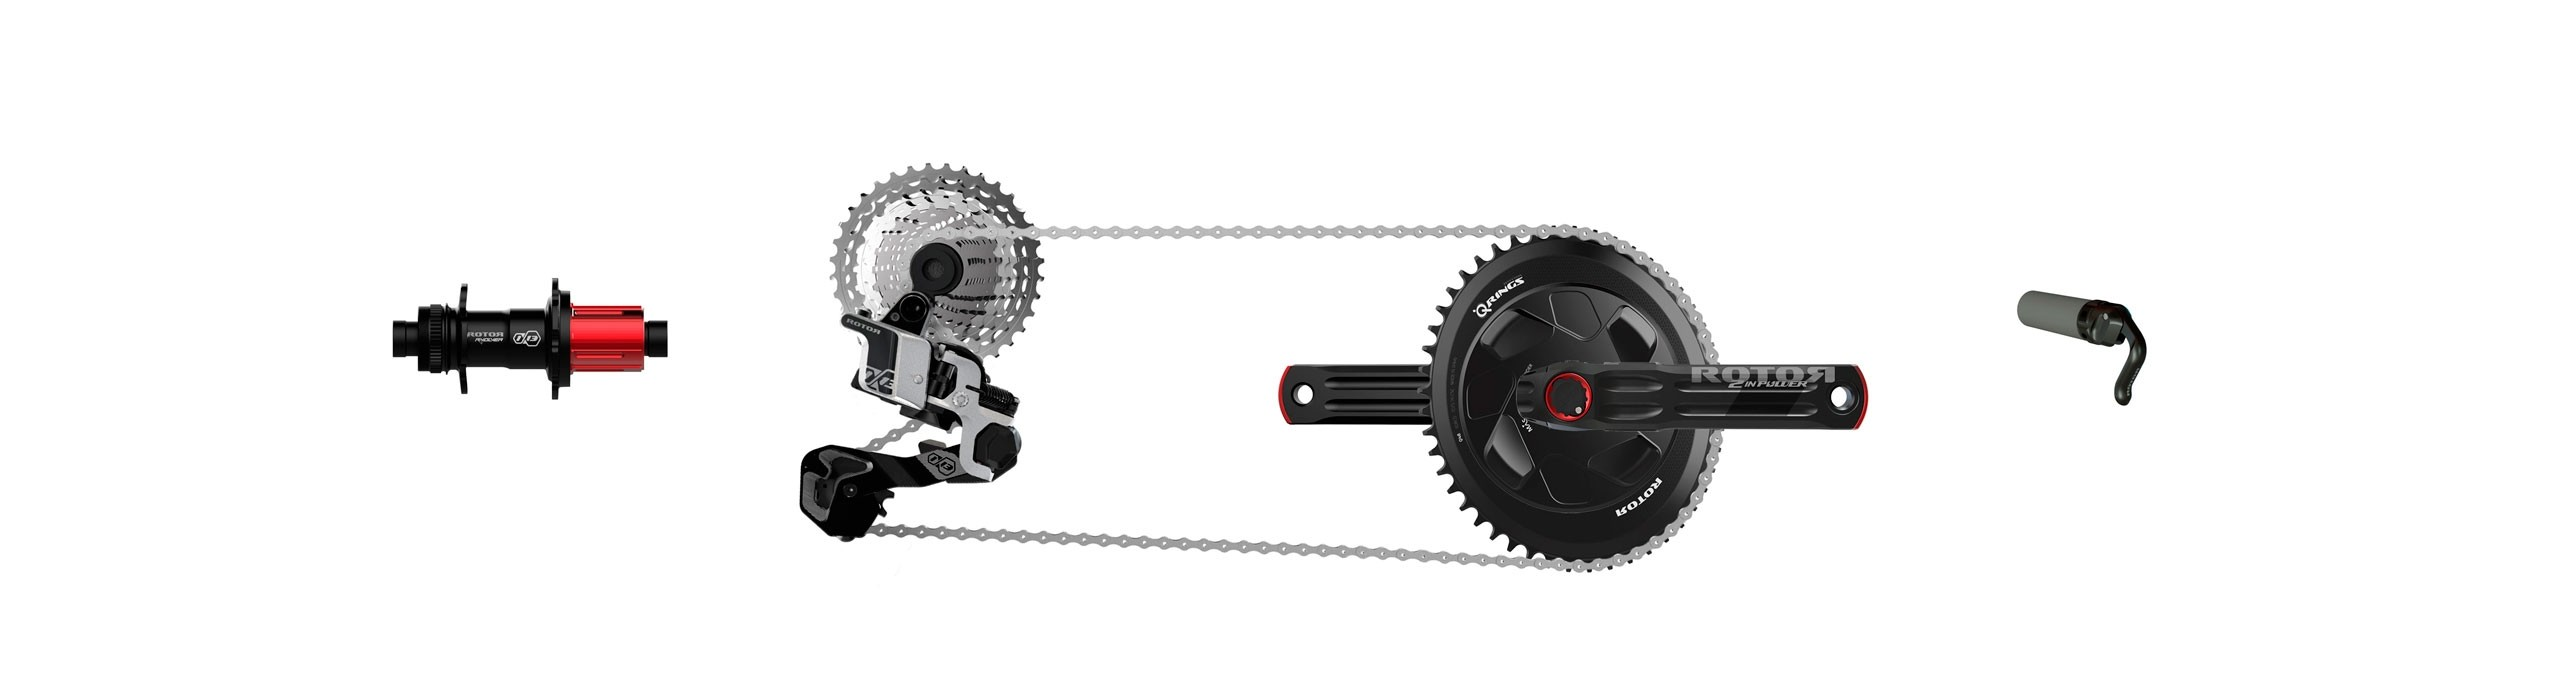 1x13 TT Groupset Performance Kit